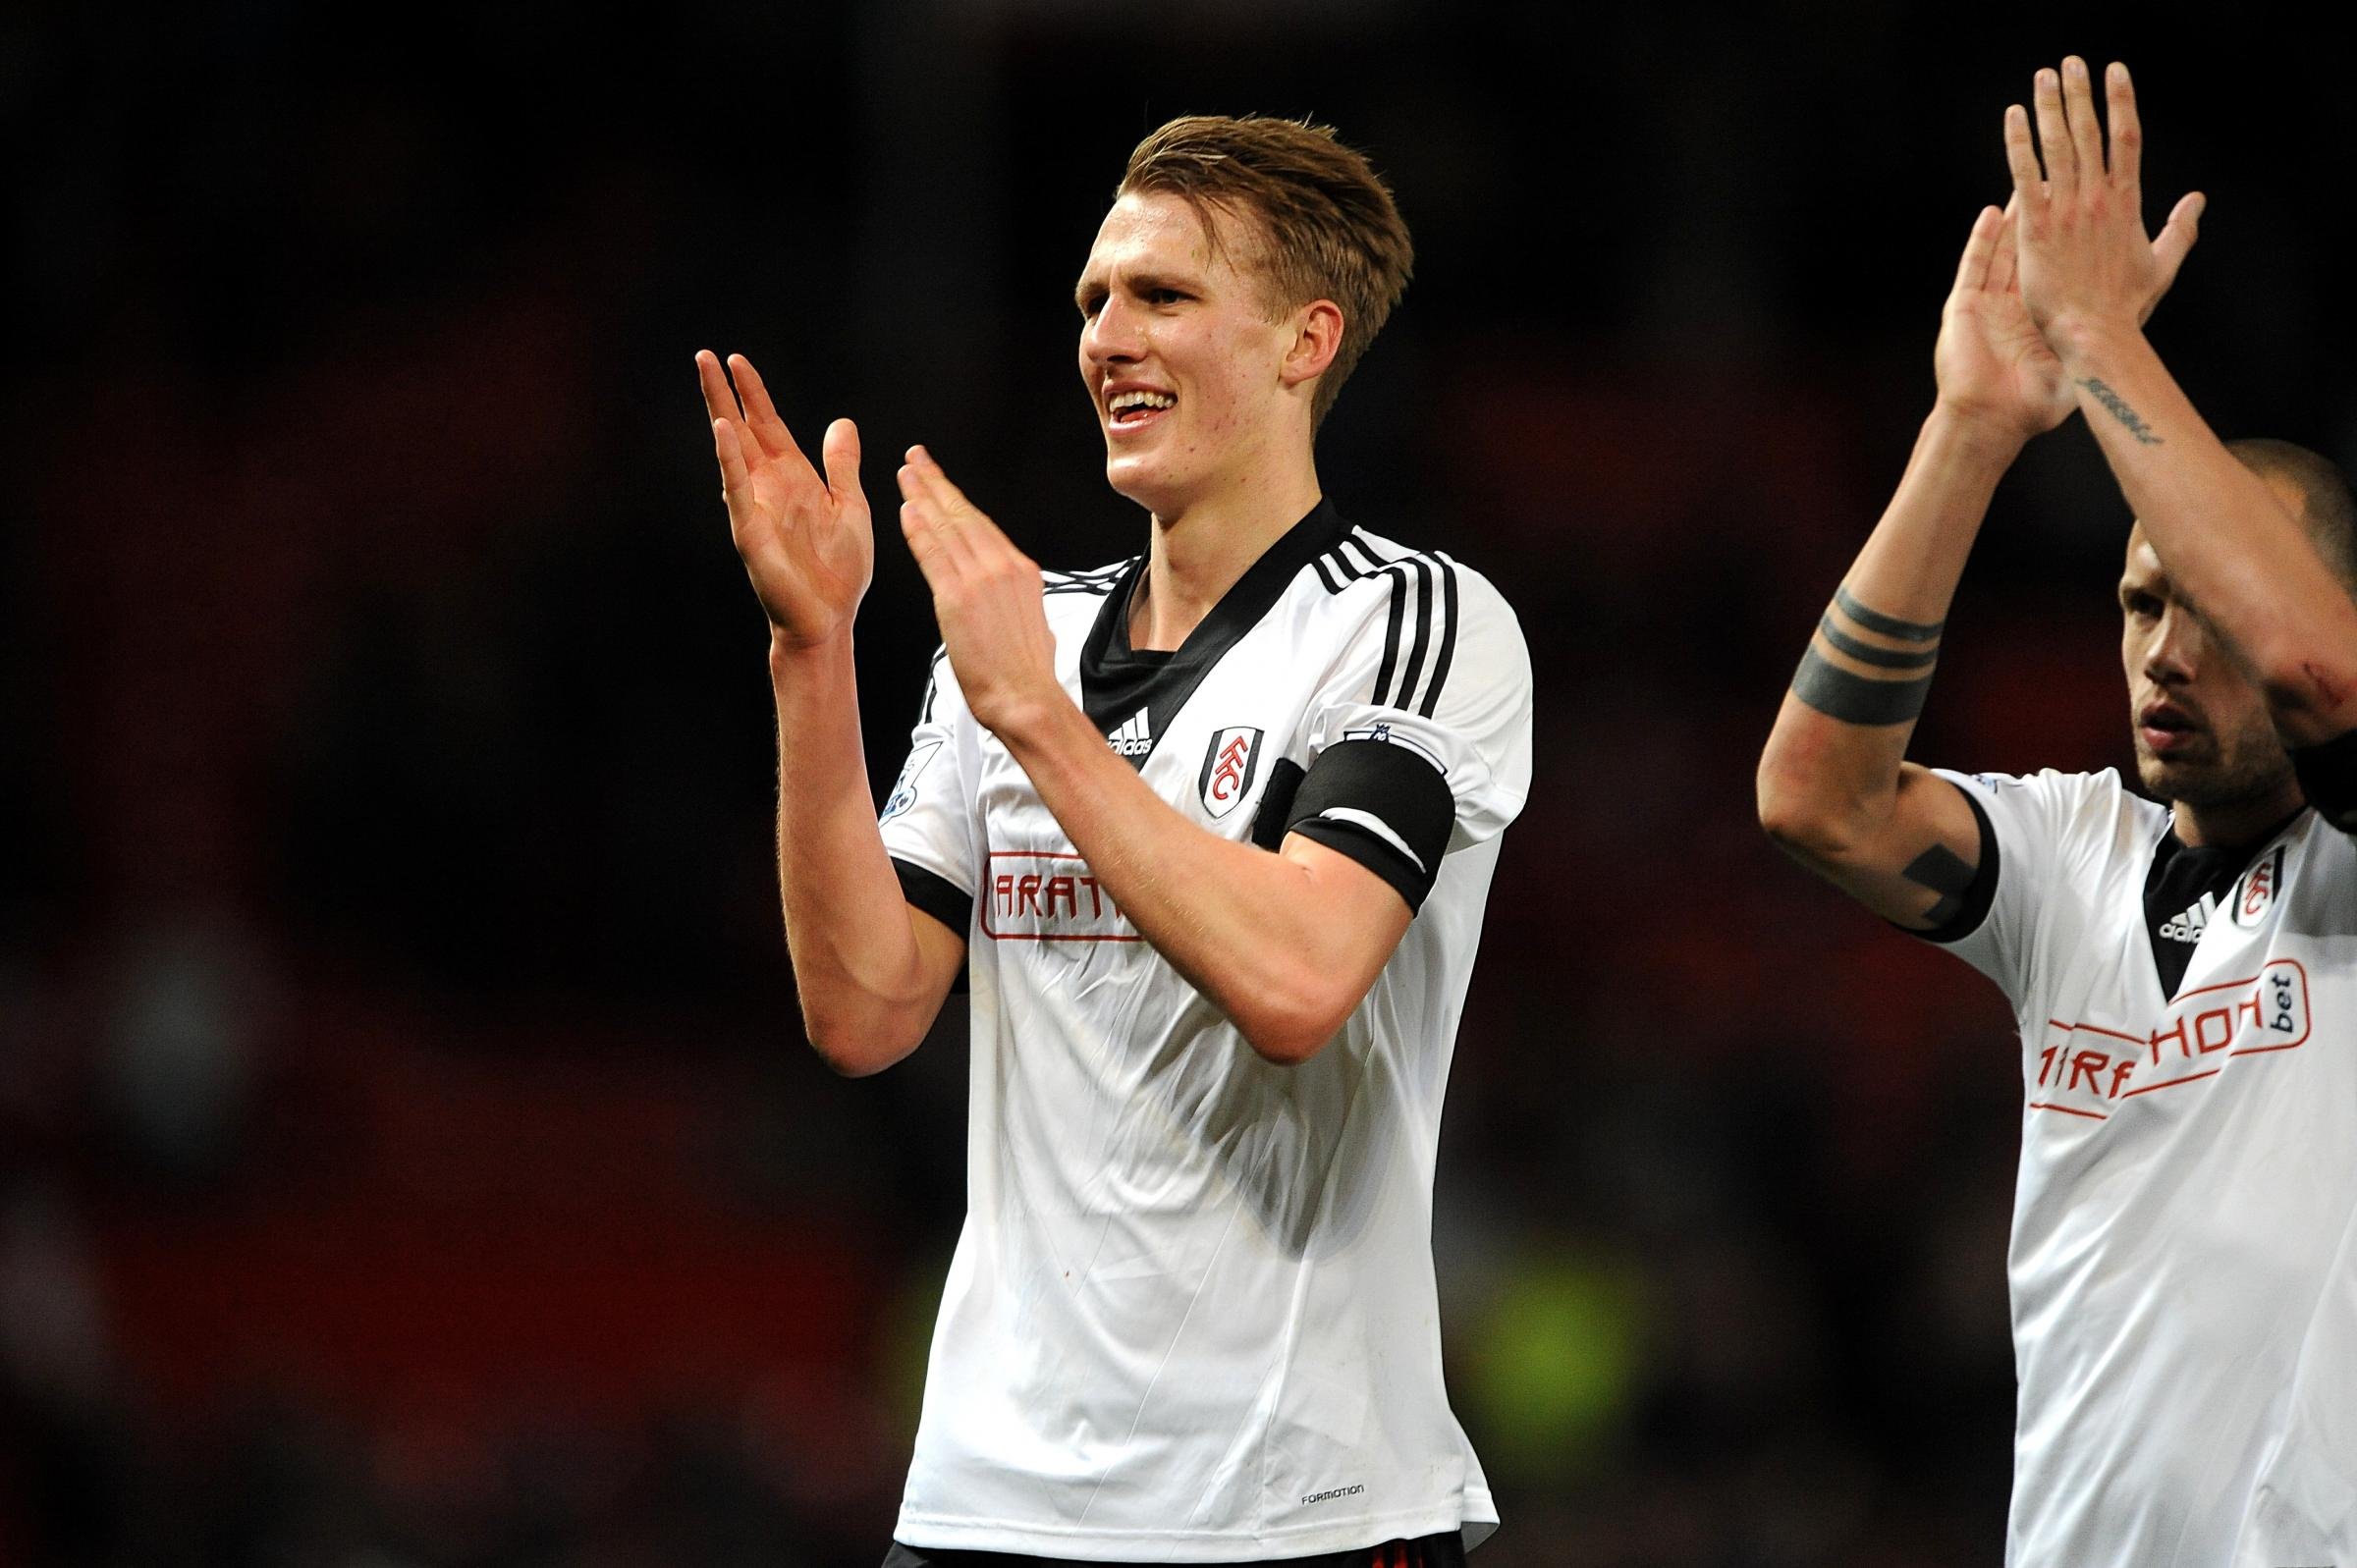 The Quakers always knew Dan Burn would shine at Fulham